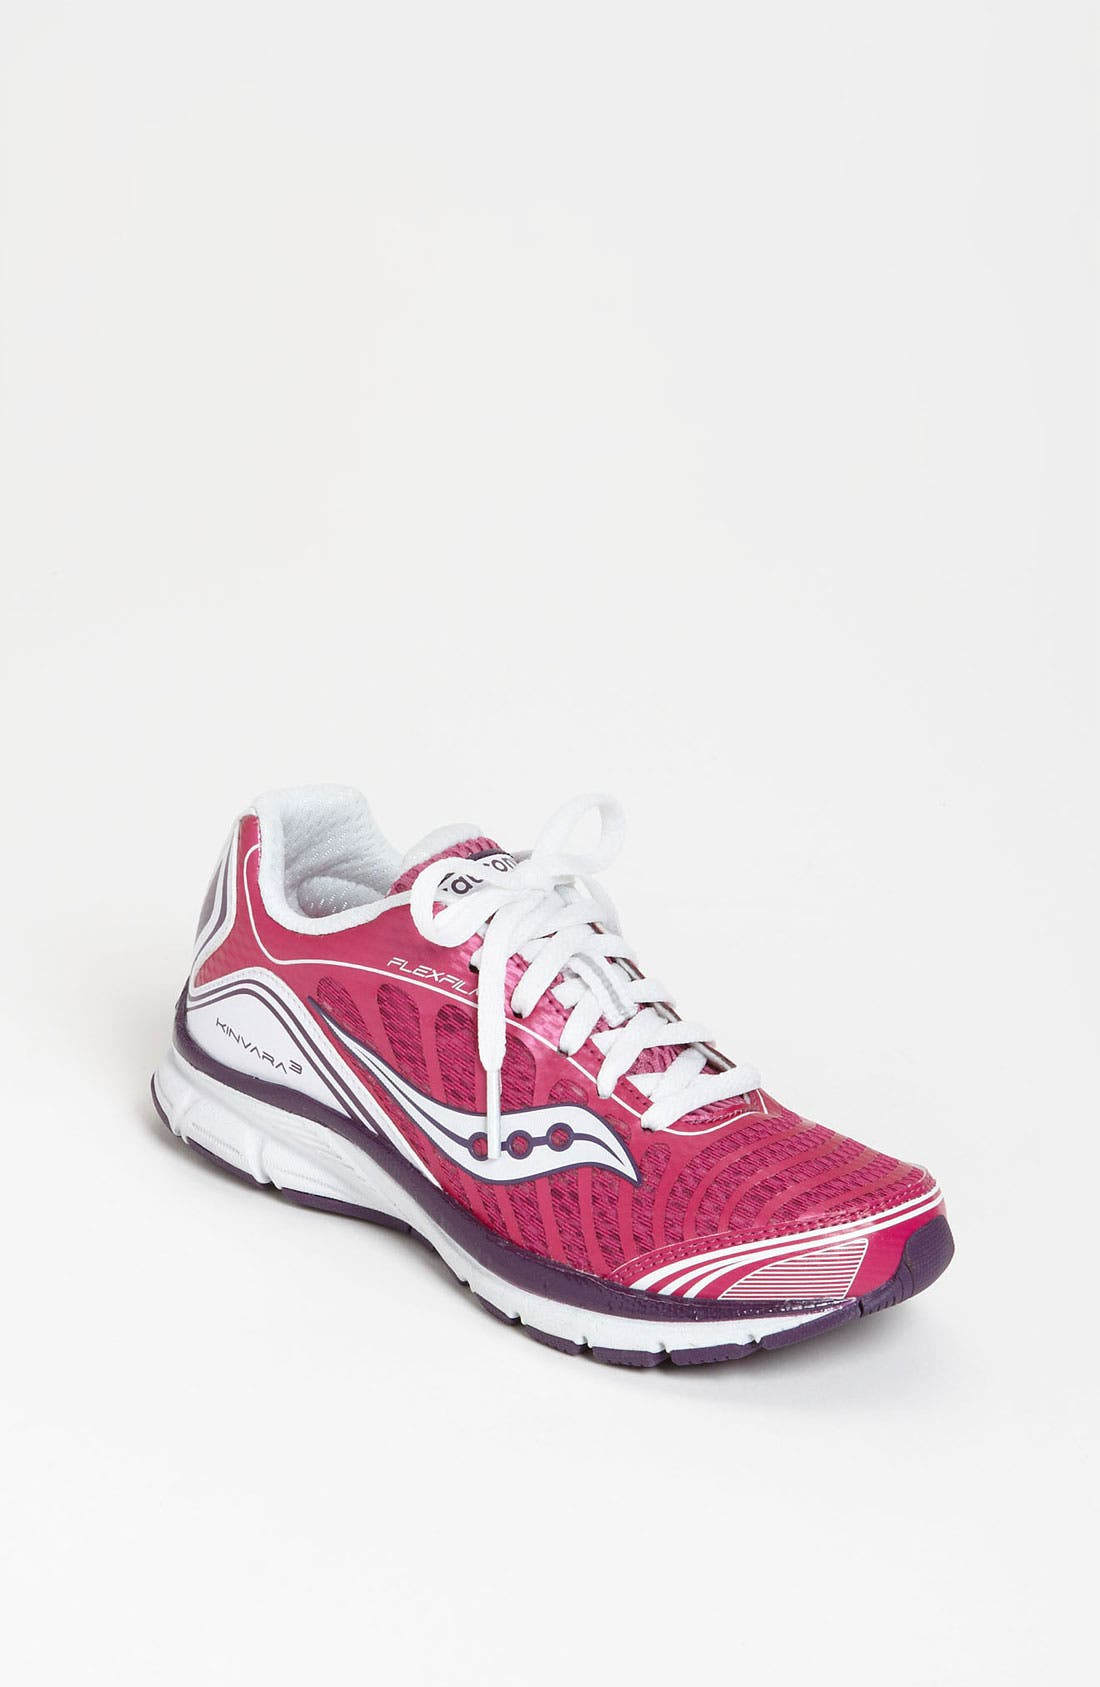 Alternate Image 1 Selected - Saucony 'Kinvara' Athletic Shoe (Toddler, Little Kid & Big Kid)